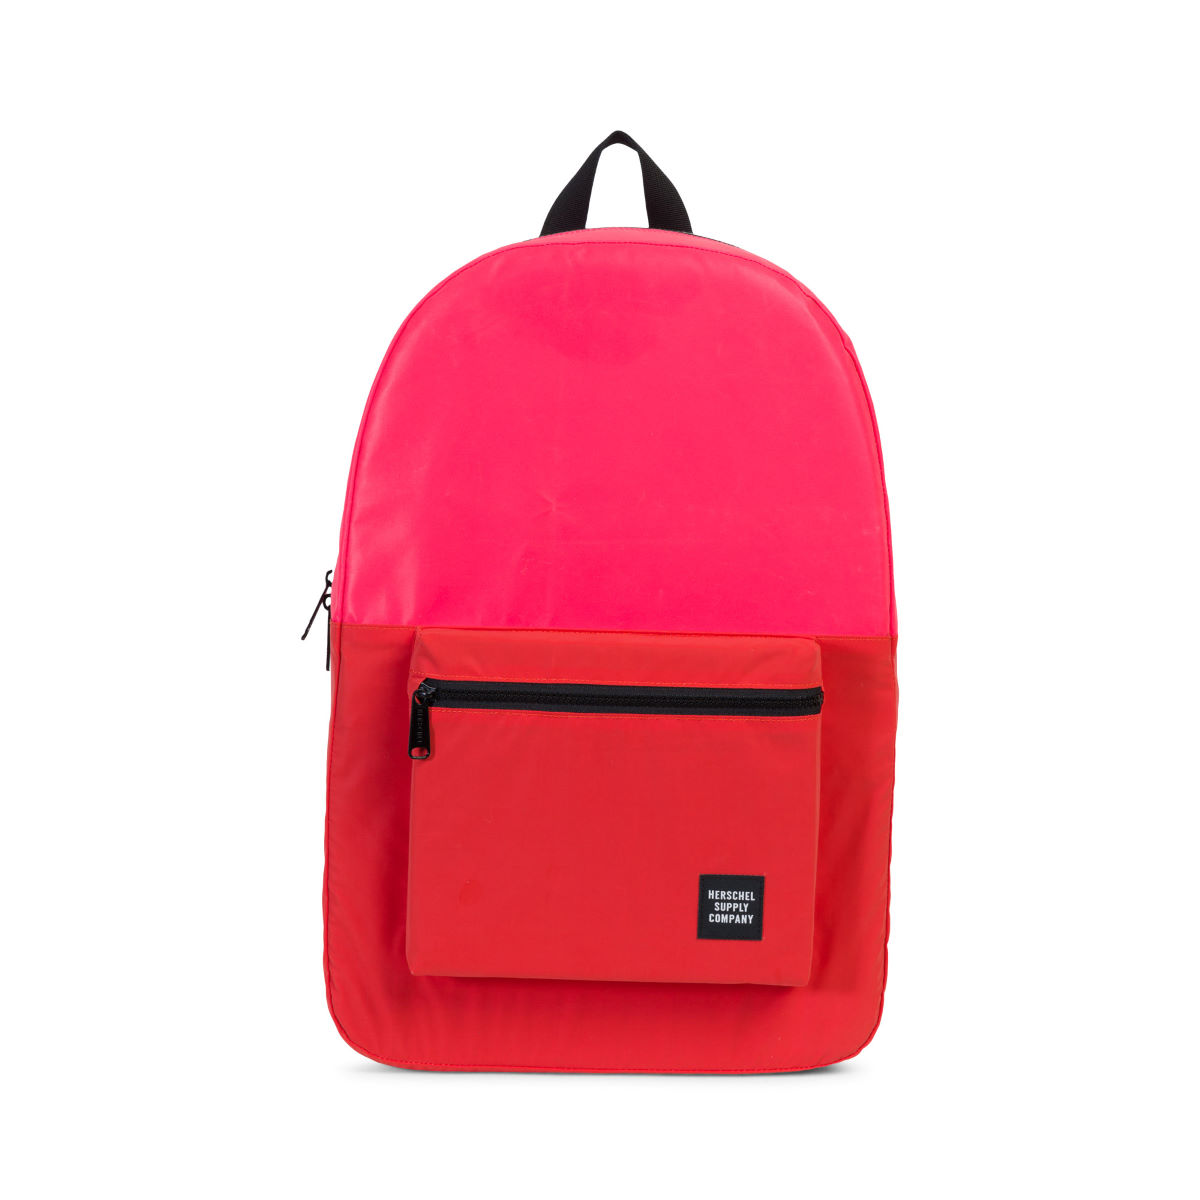 Sac à dos Herschel (repliable) - One Size Neon Pink/Red Sacs à dos